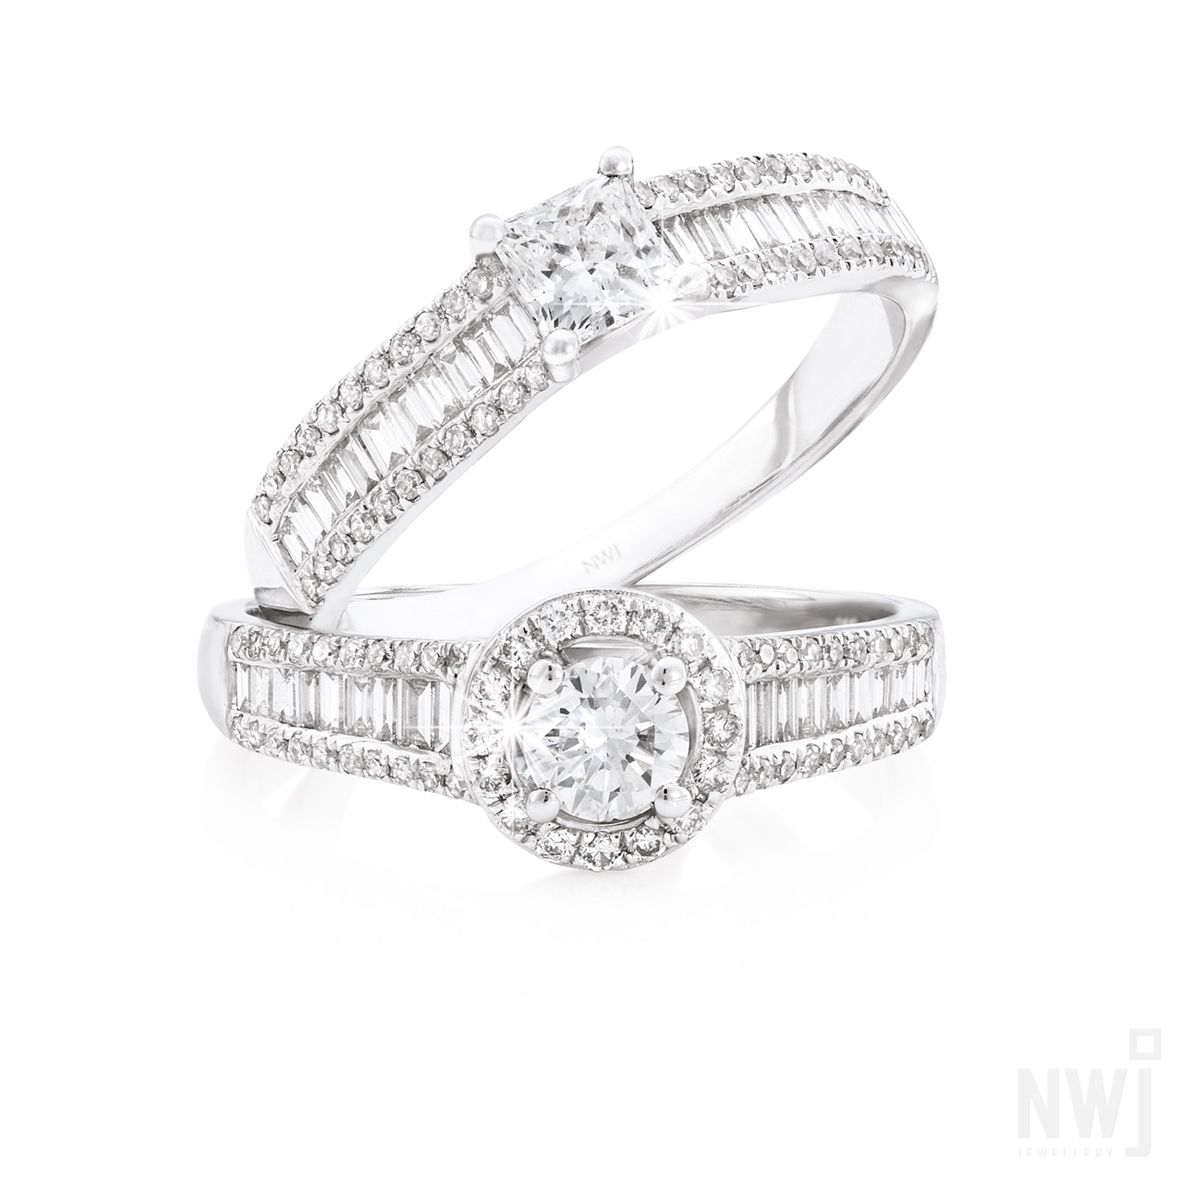 ad18d50c0703 Diamond Collection  18ct Diamond Rings By NWJ  Valid for 2013  myNWJwishlist